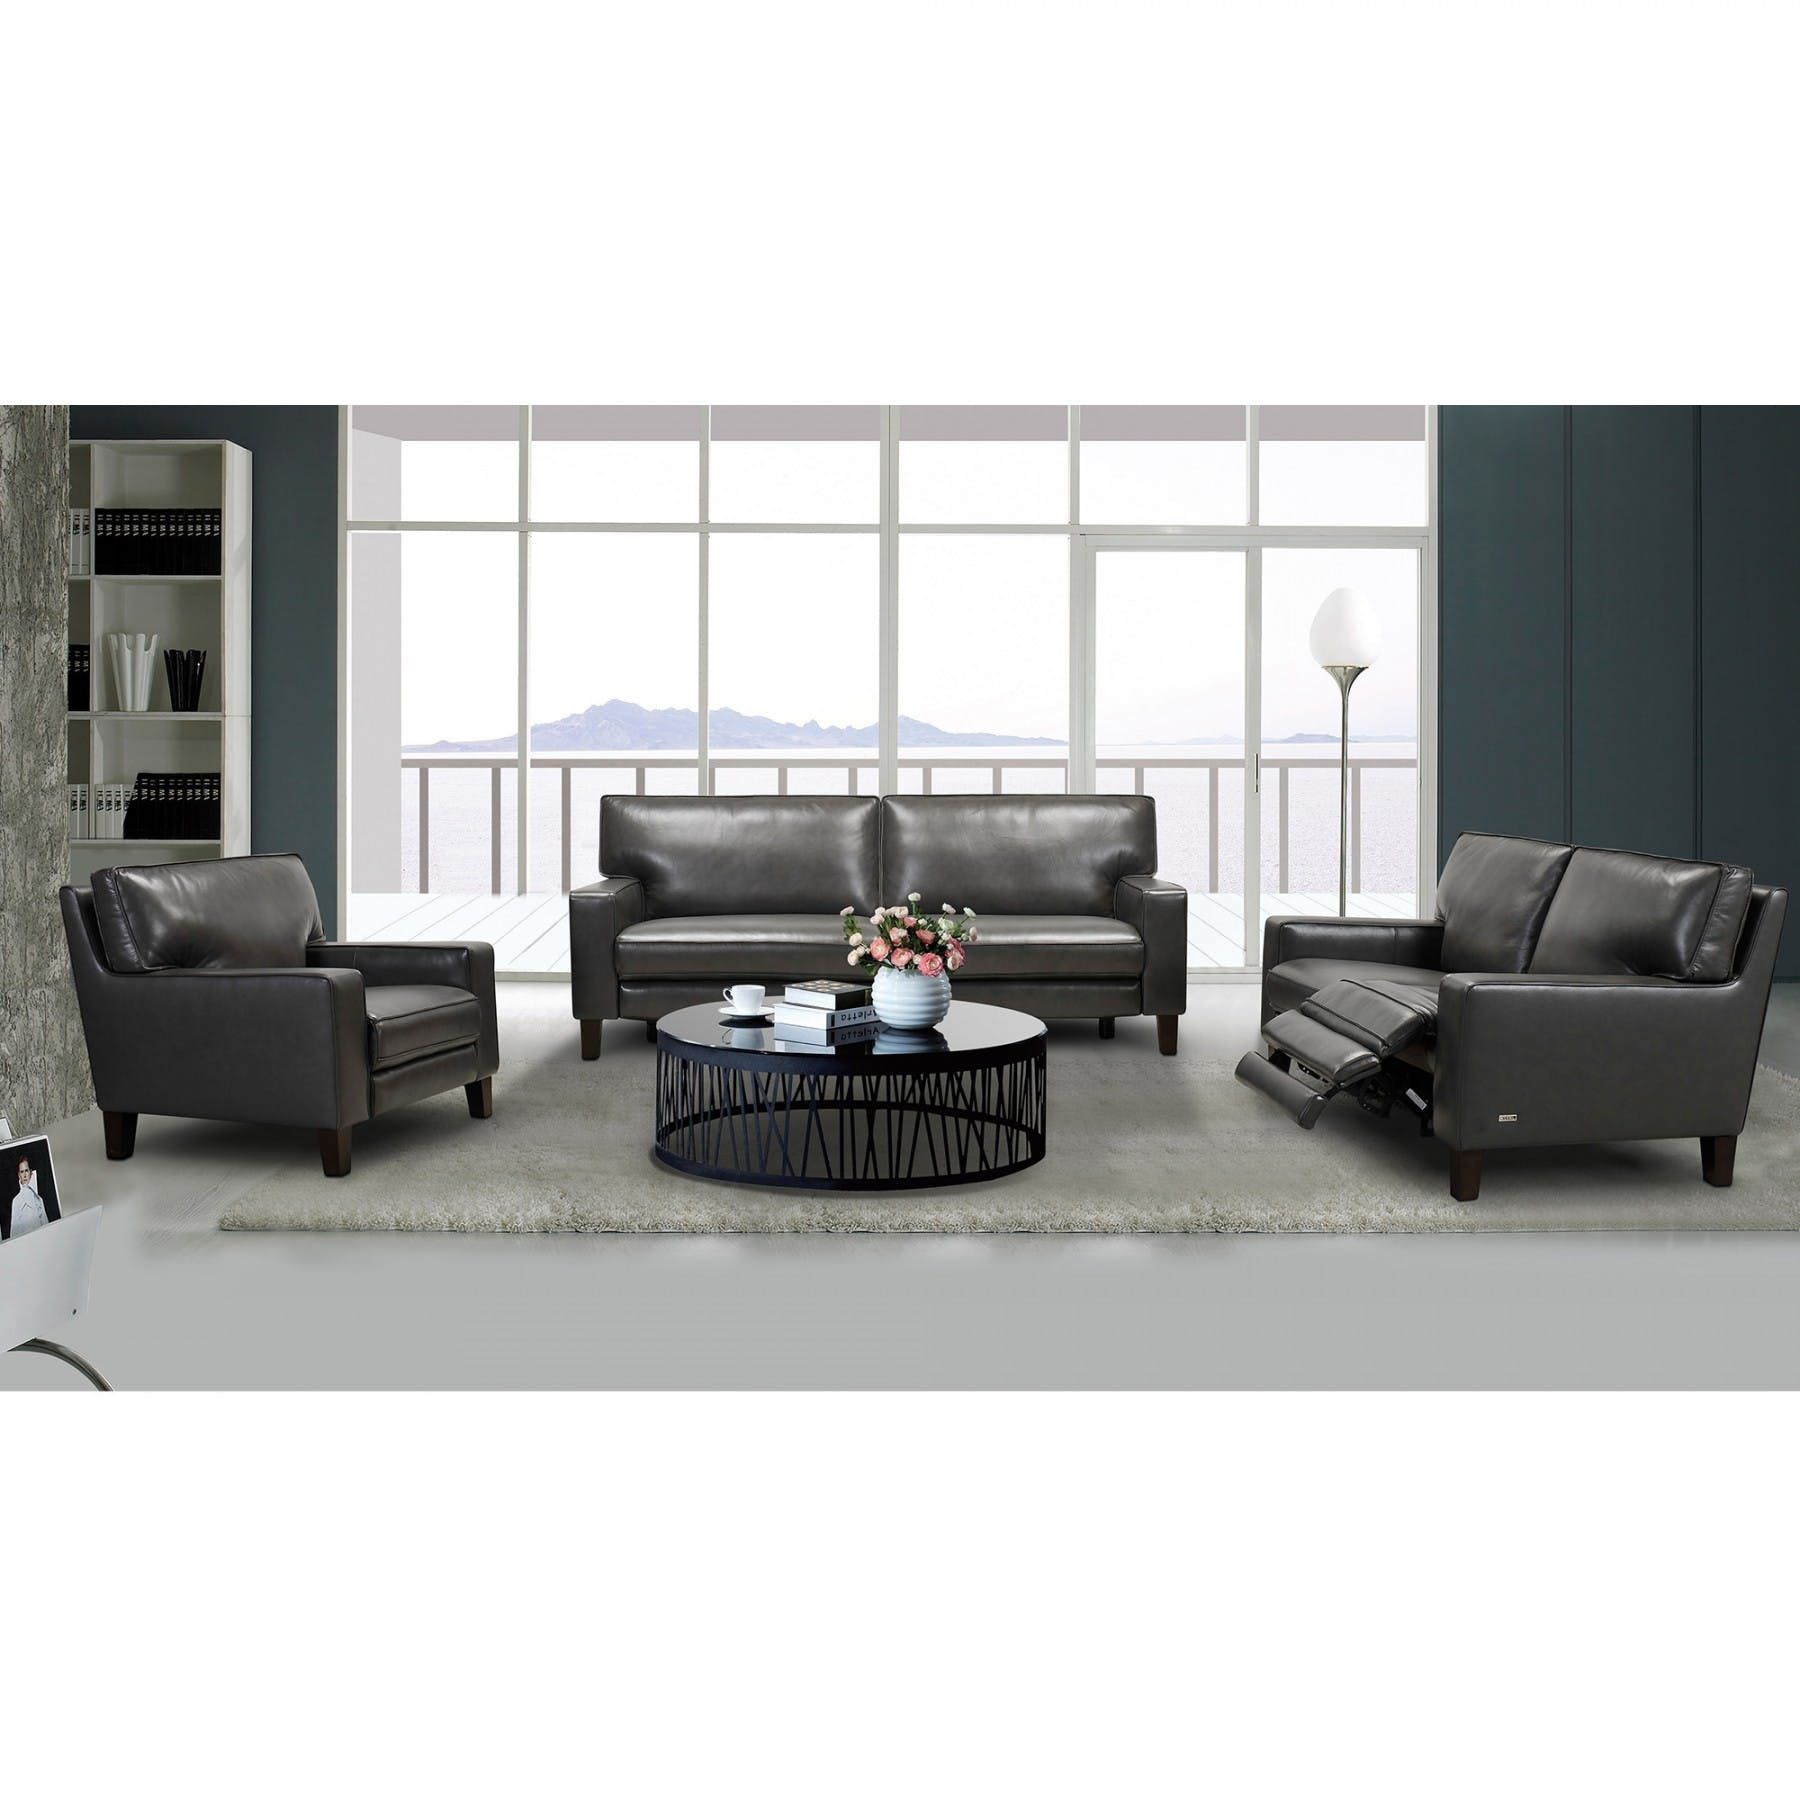 Classico Pewter Sofa With Power Footrest Bernie Phyl S Furniture By Violino Furniture In 2020 White Sofa Table Foot Rest Sofa